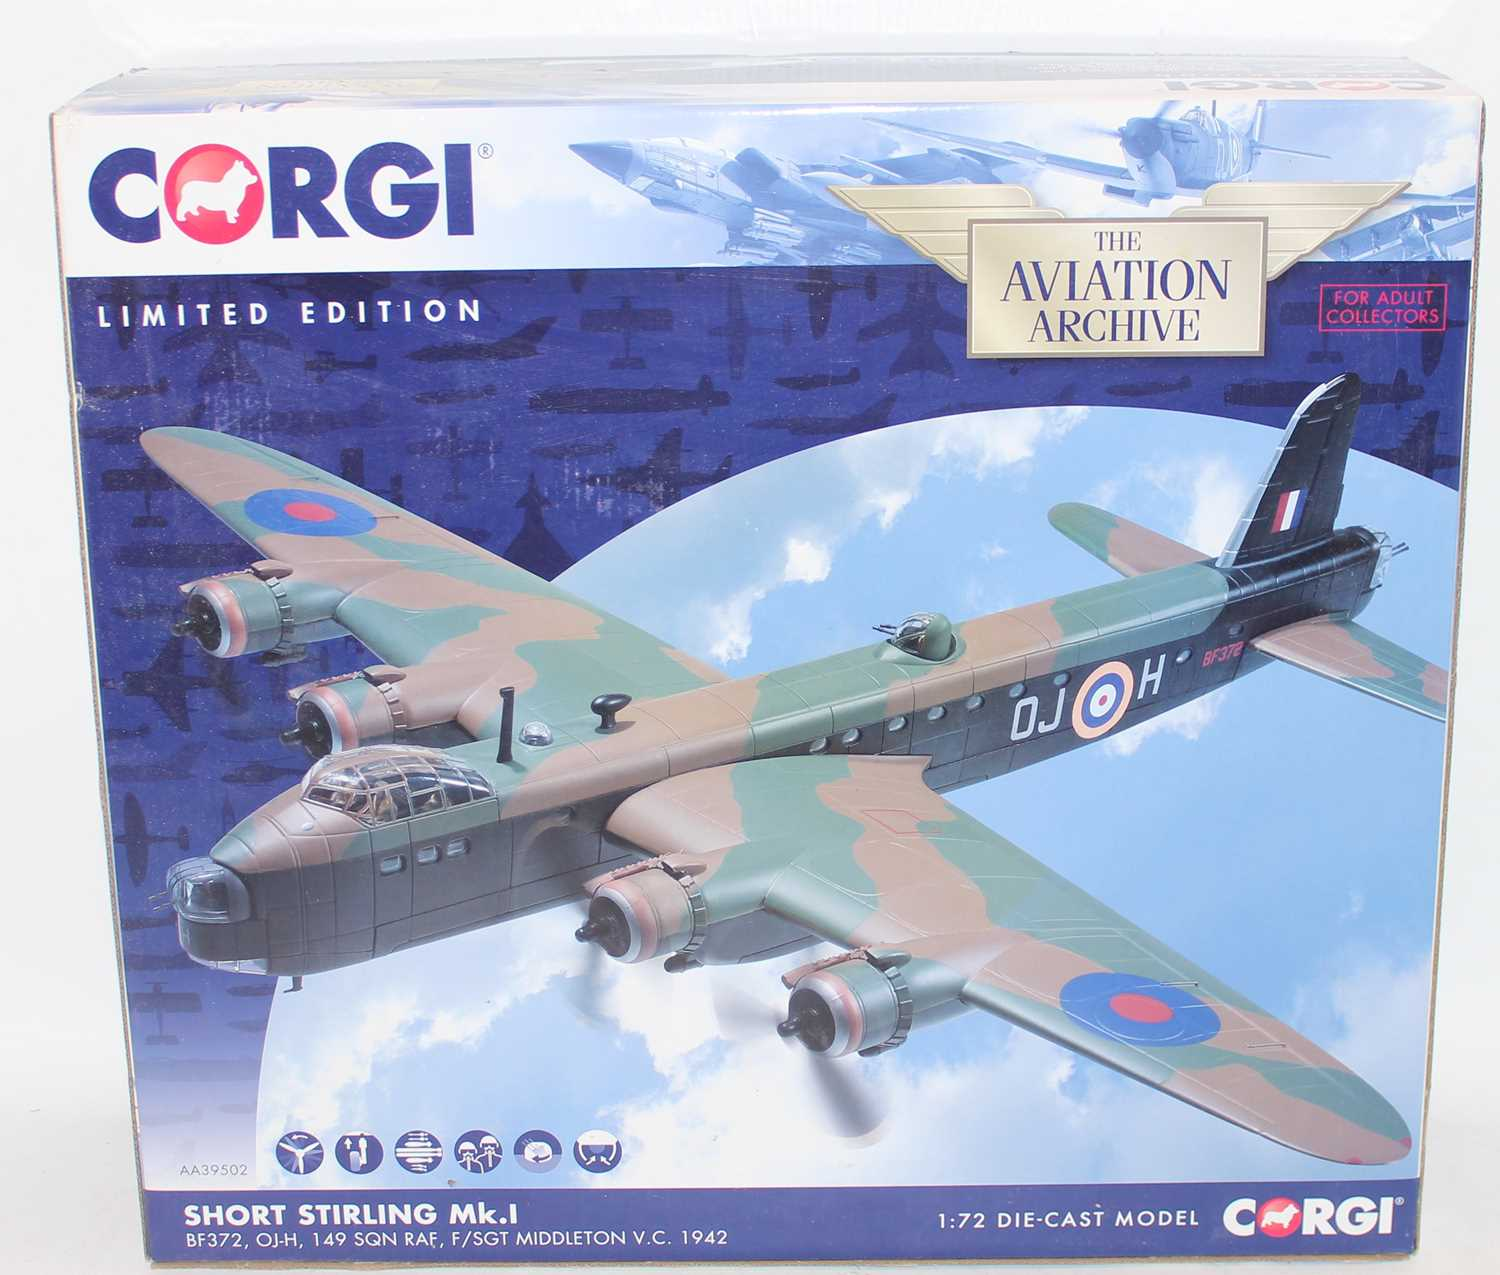 A Corgi Aviation Archive model No. AA39502 limited edition 1/72 scale diecast model of a Short